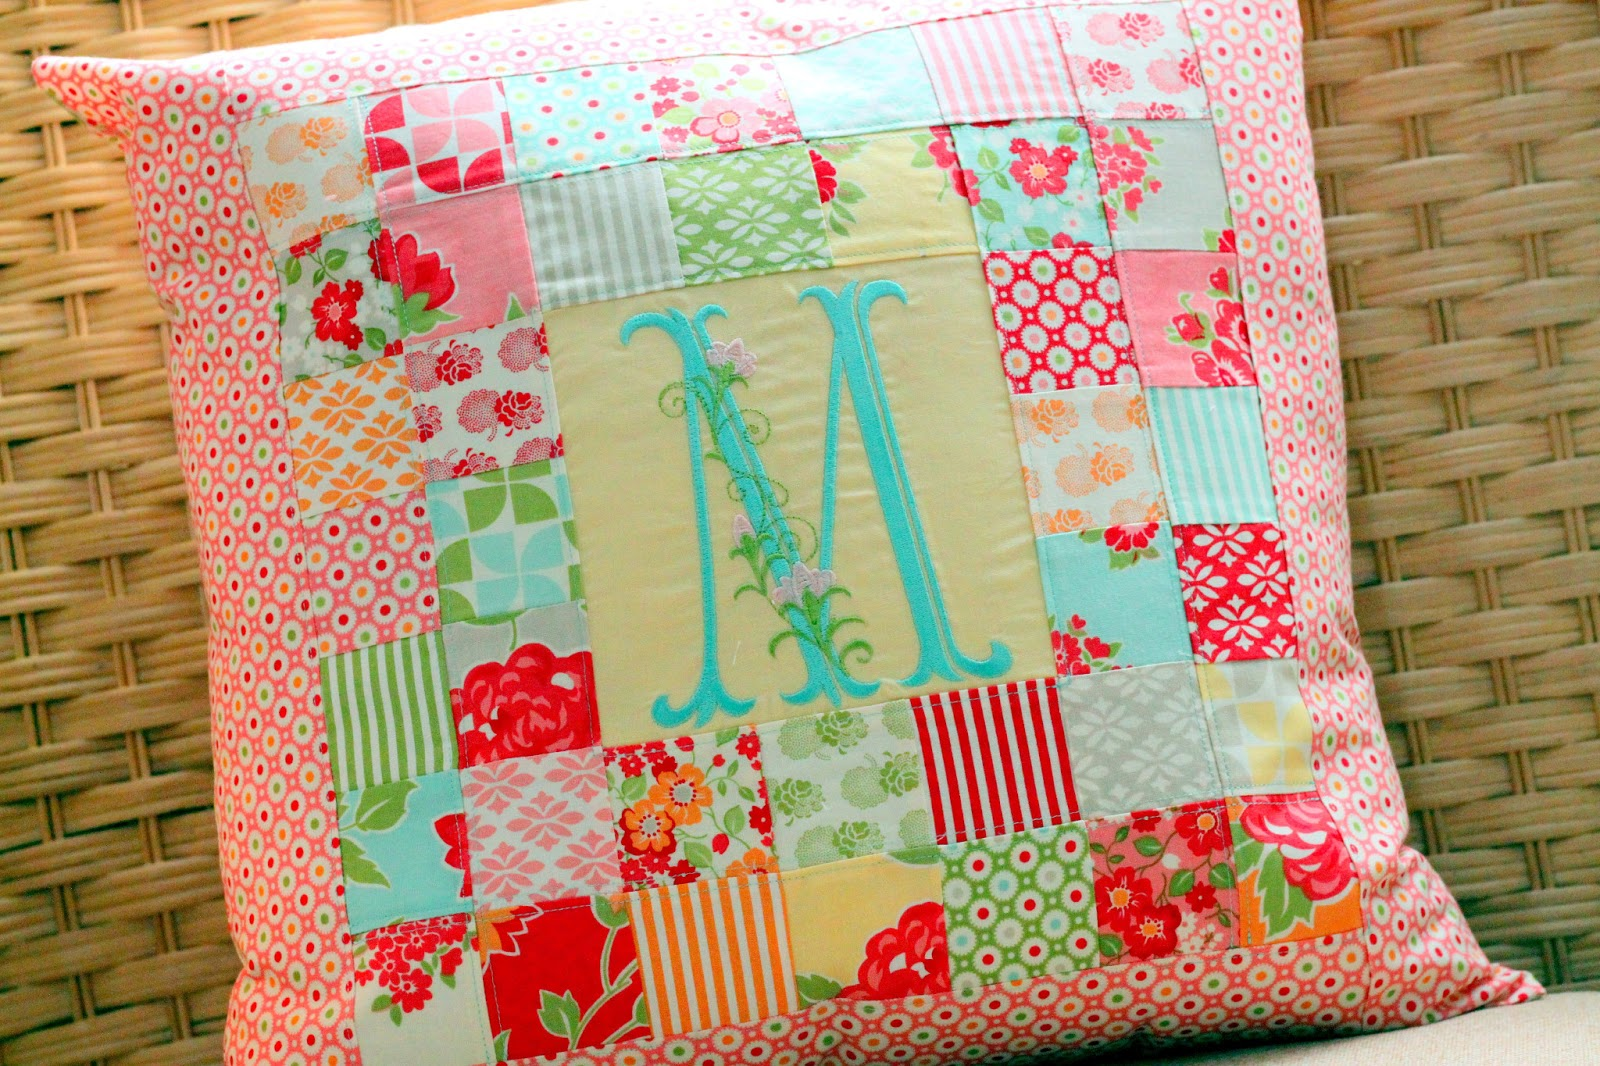 Cushion Cover Sewing Pattern Patchwork: Patchwork Pillow Pattern and Tutorial   The Cottage Mama,